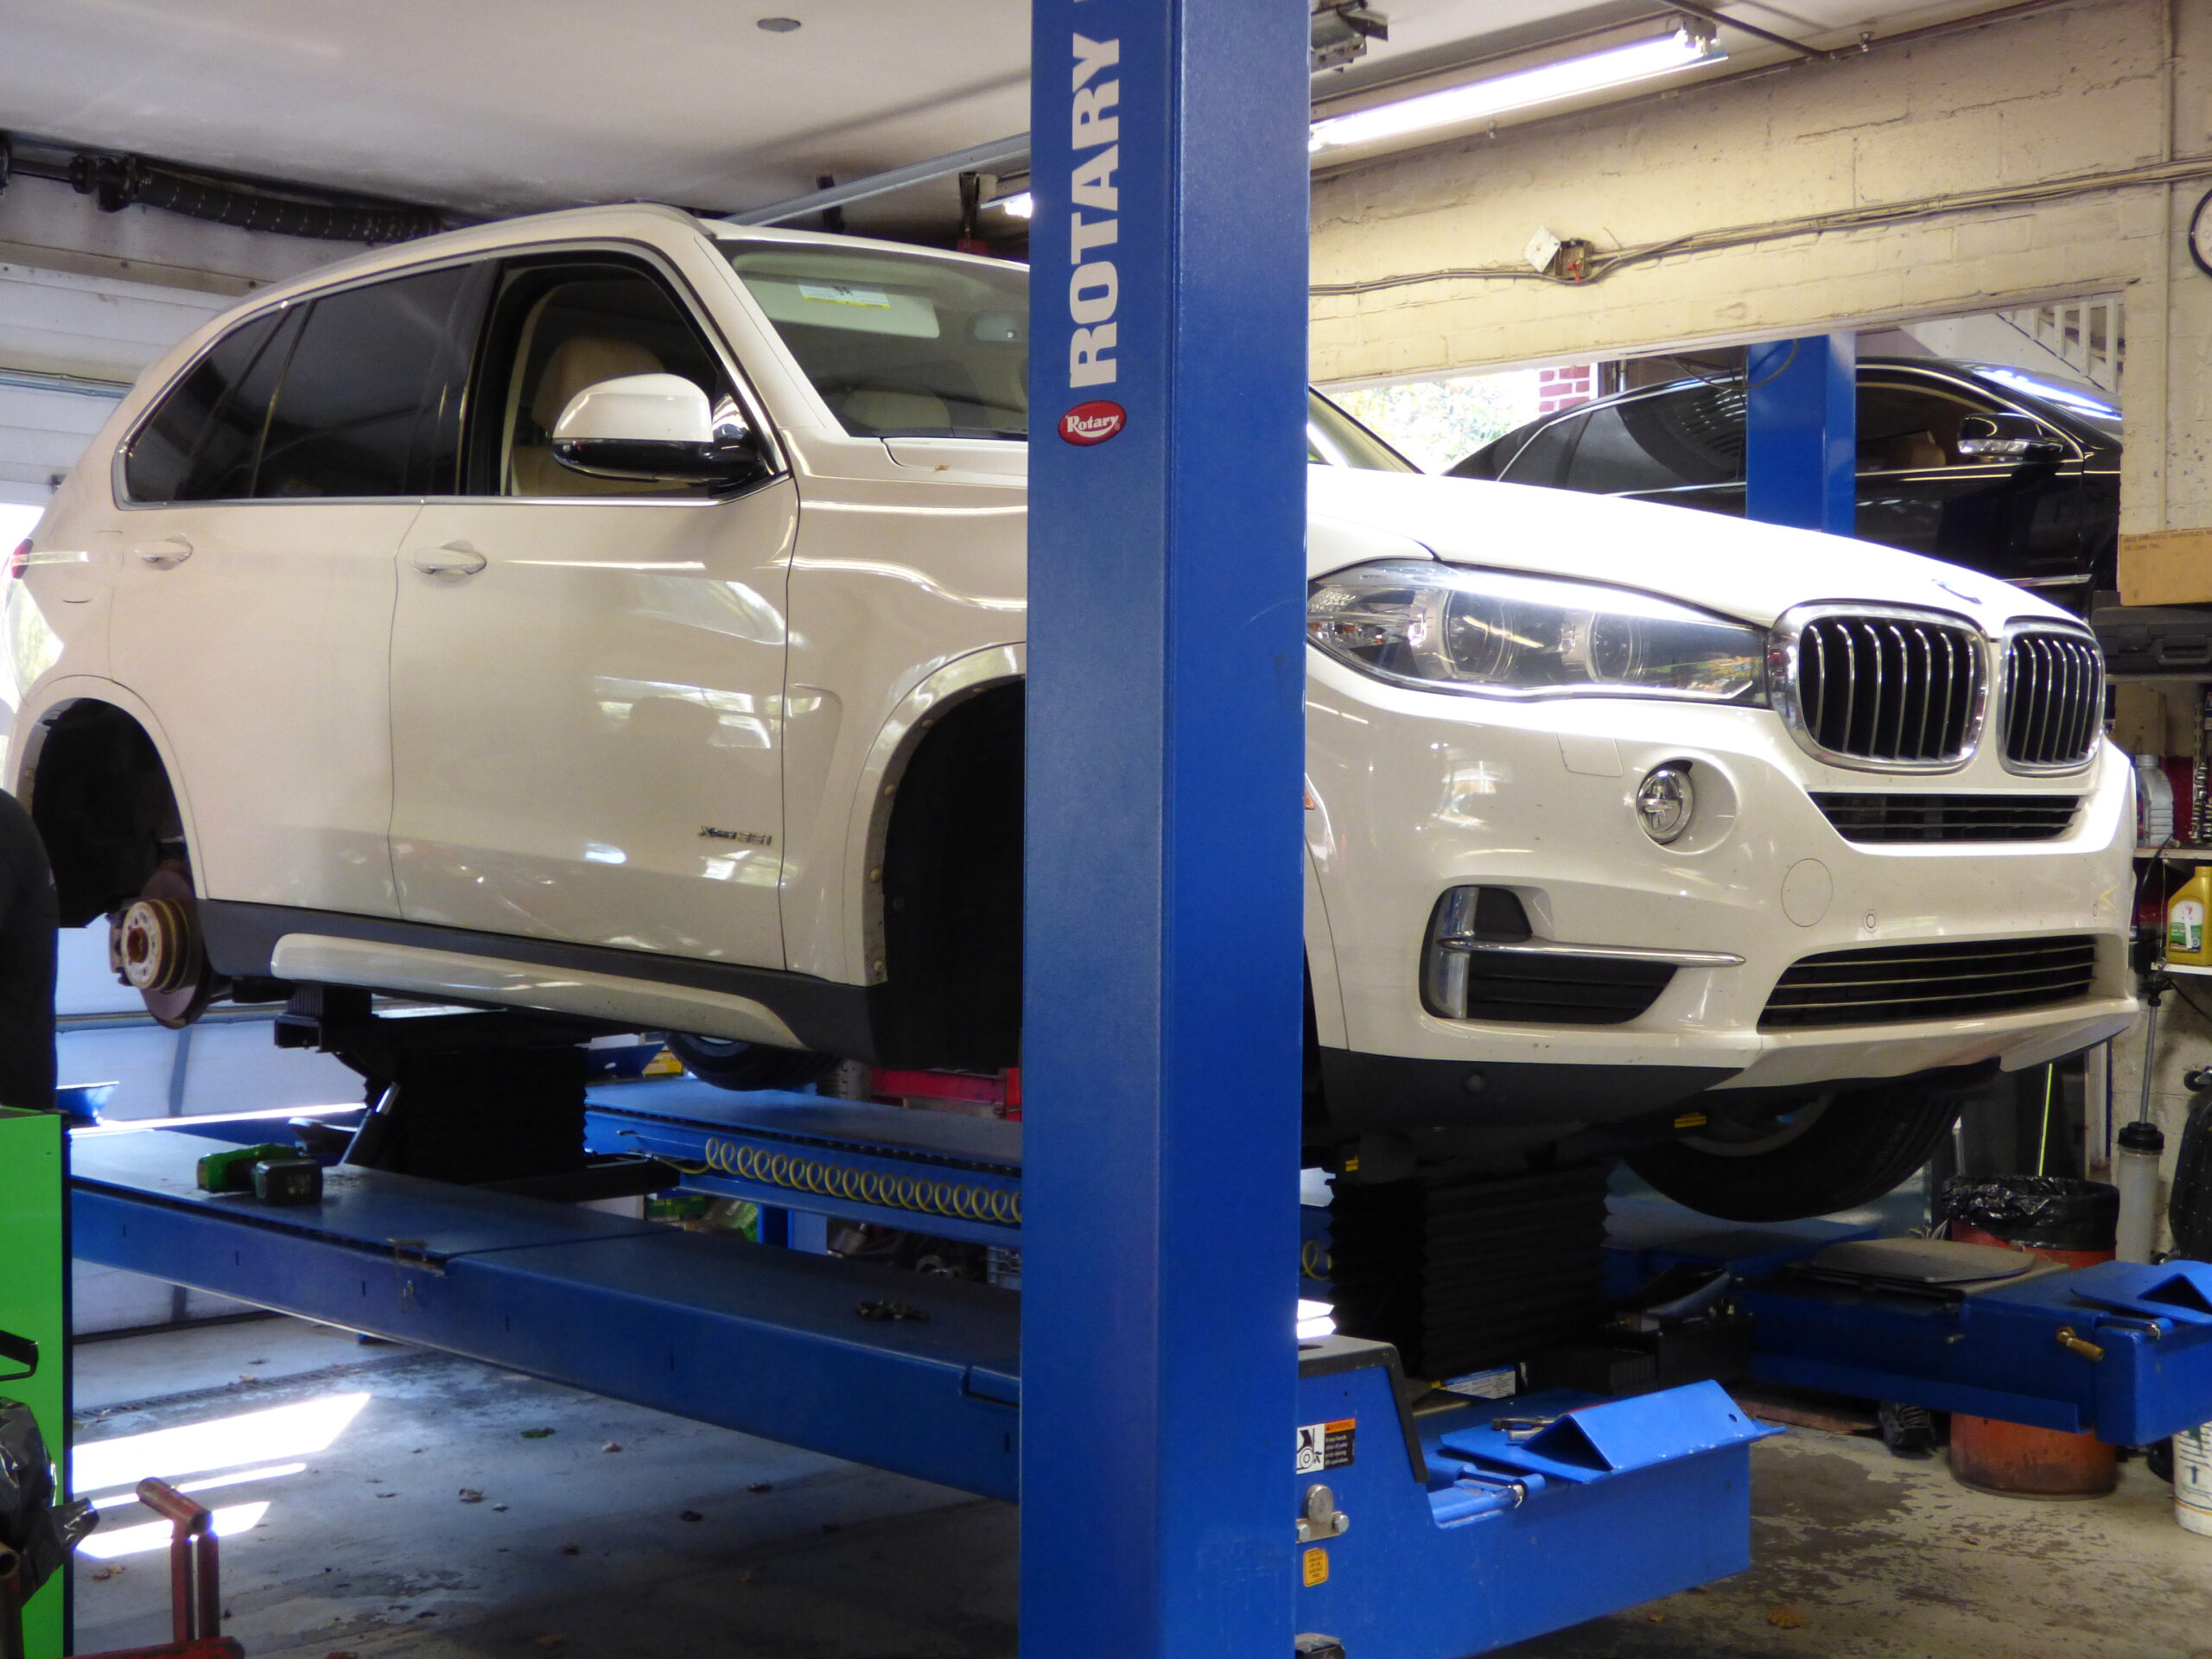 White BMW on lift at Imported Auto Center